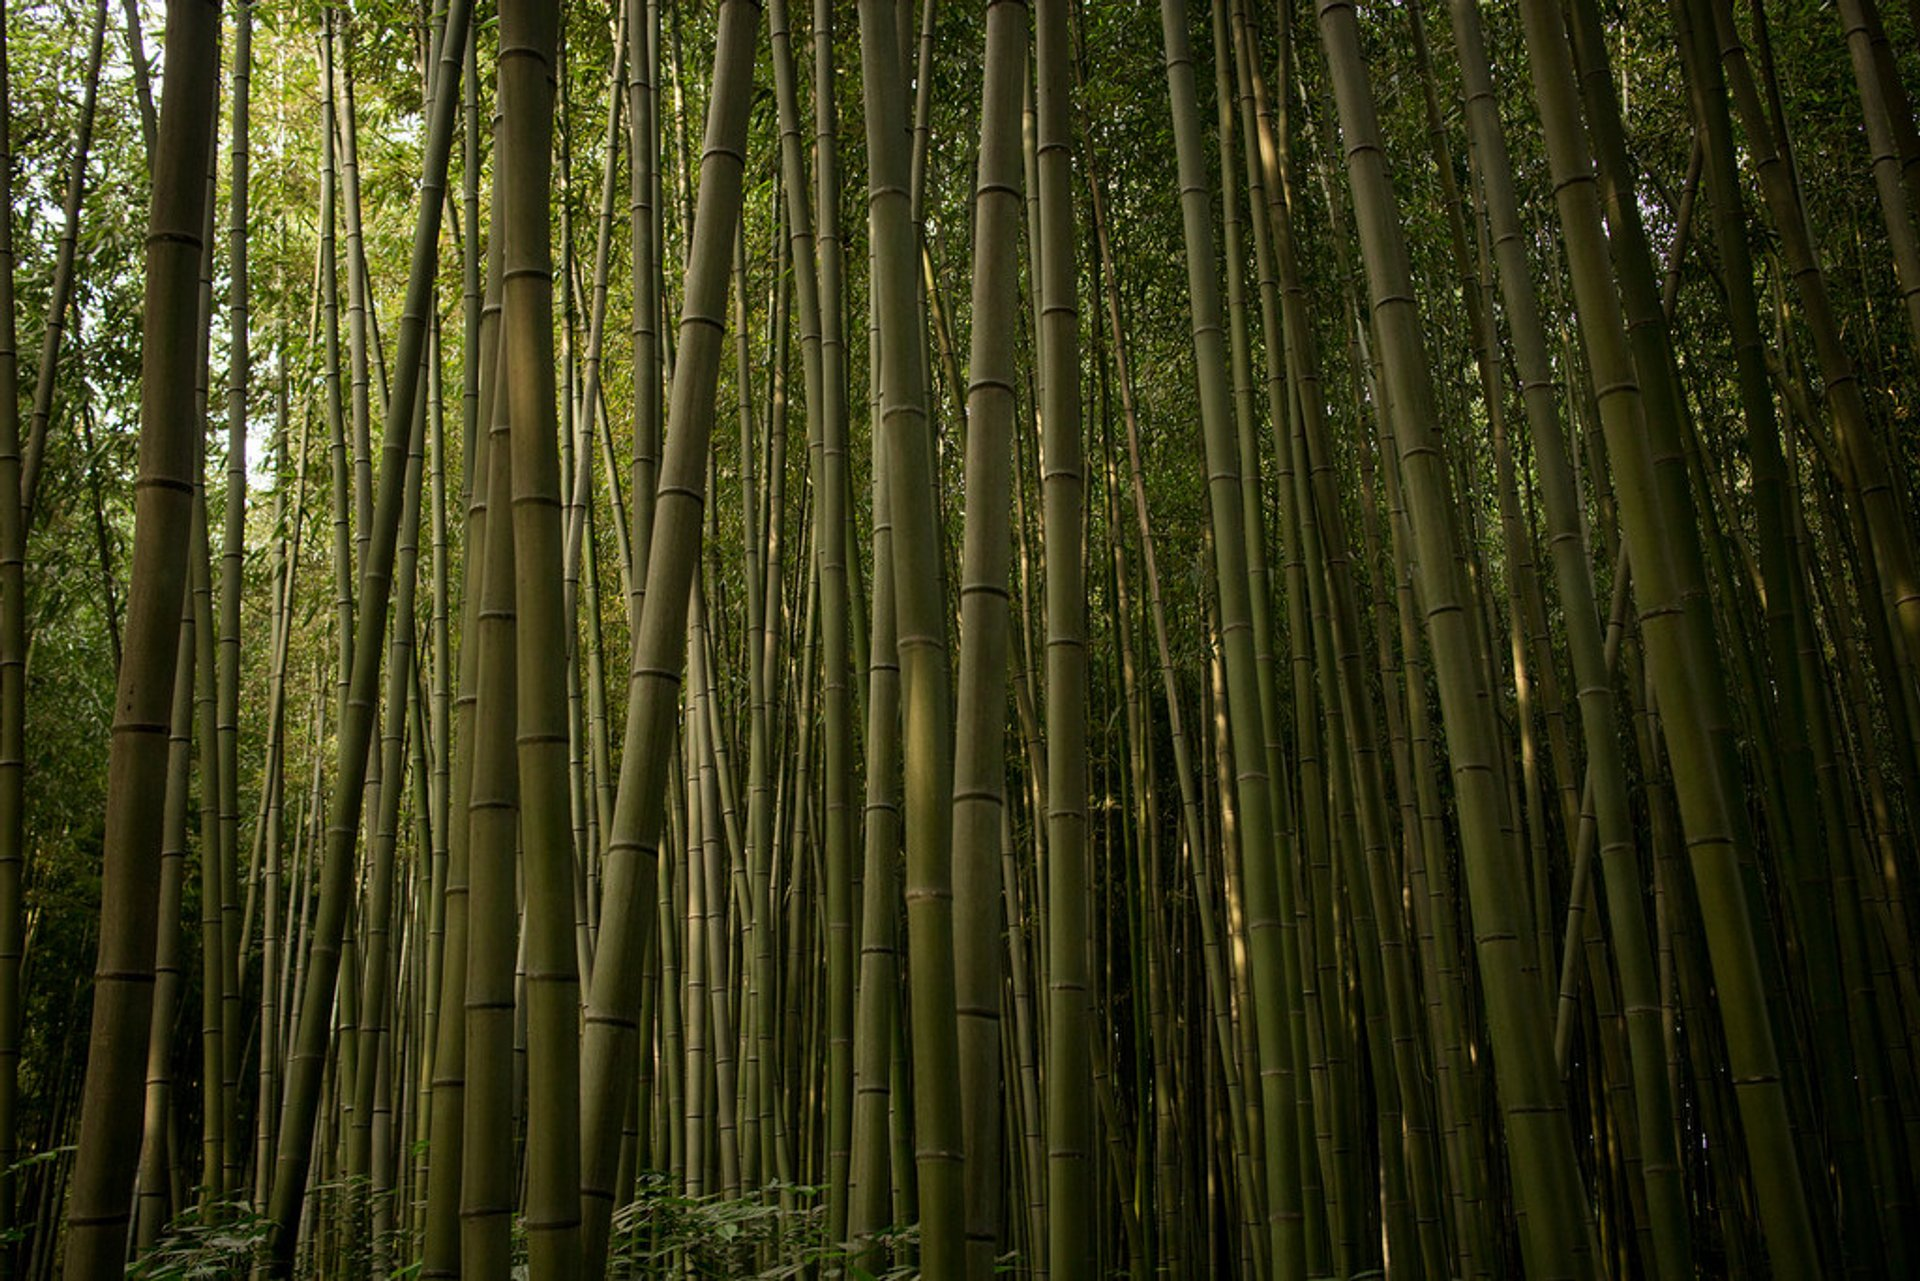 Bamboo forest 2020